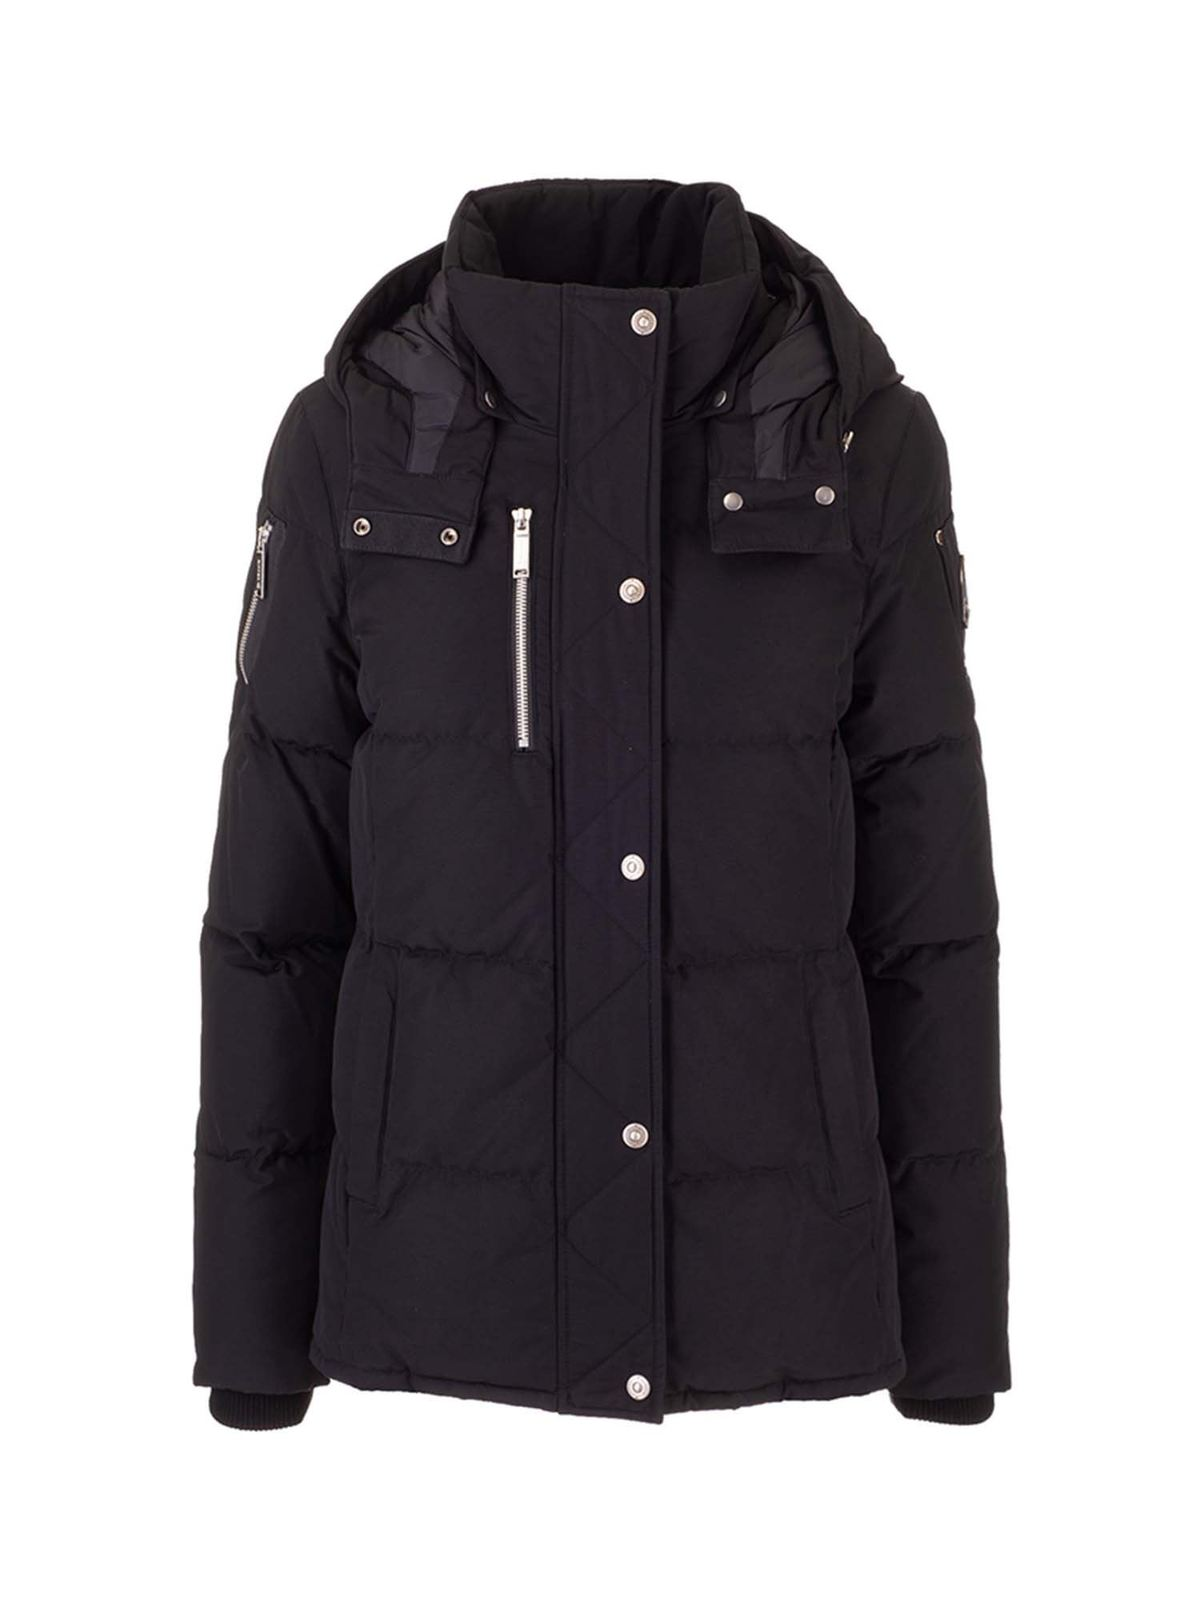 Moose Knuckles QUILTED DOWN JACKET IN BLACK